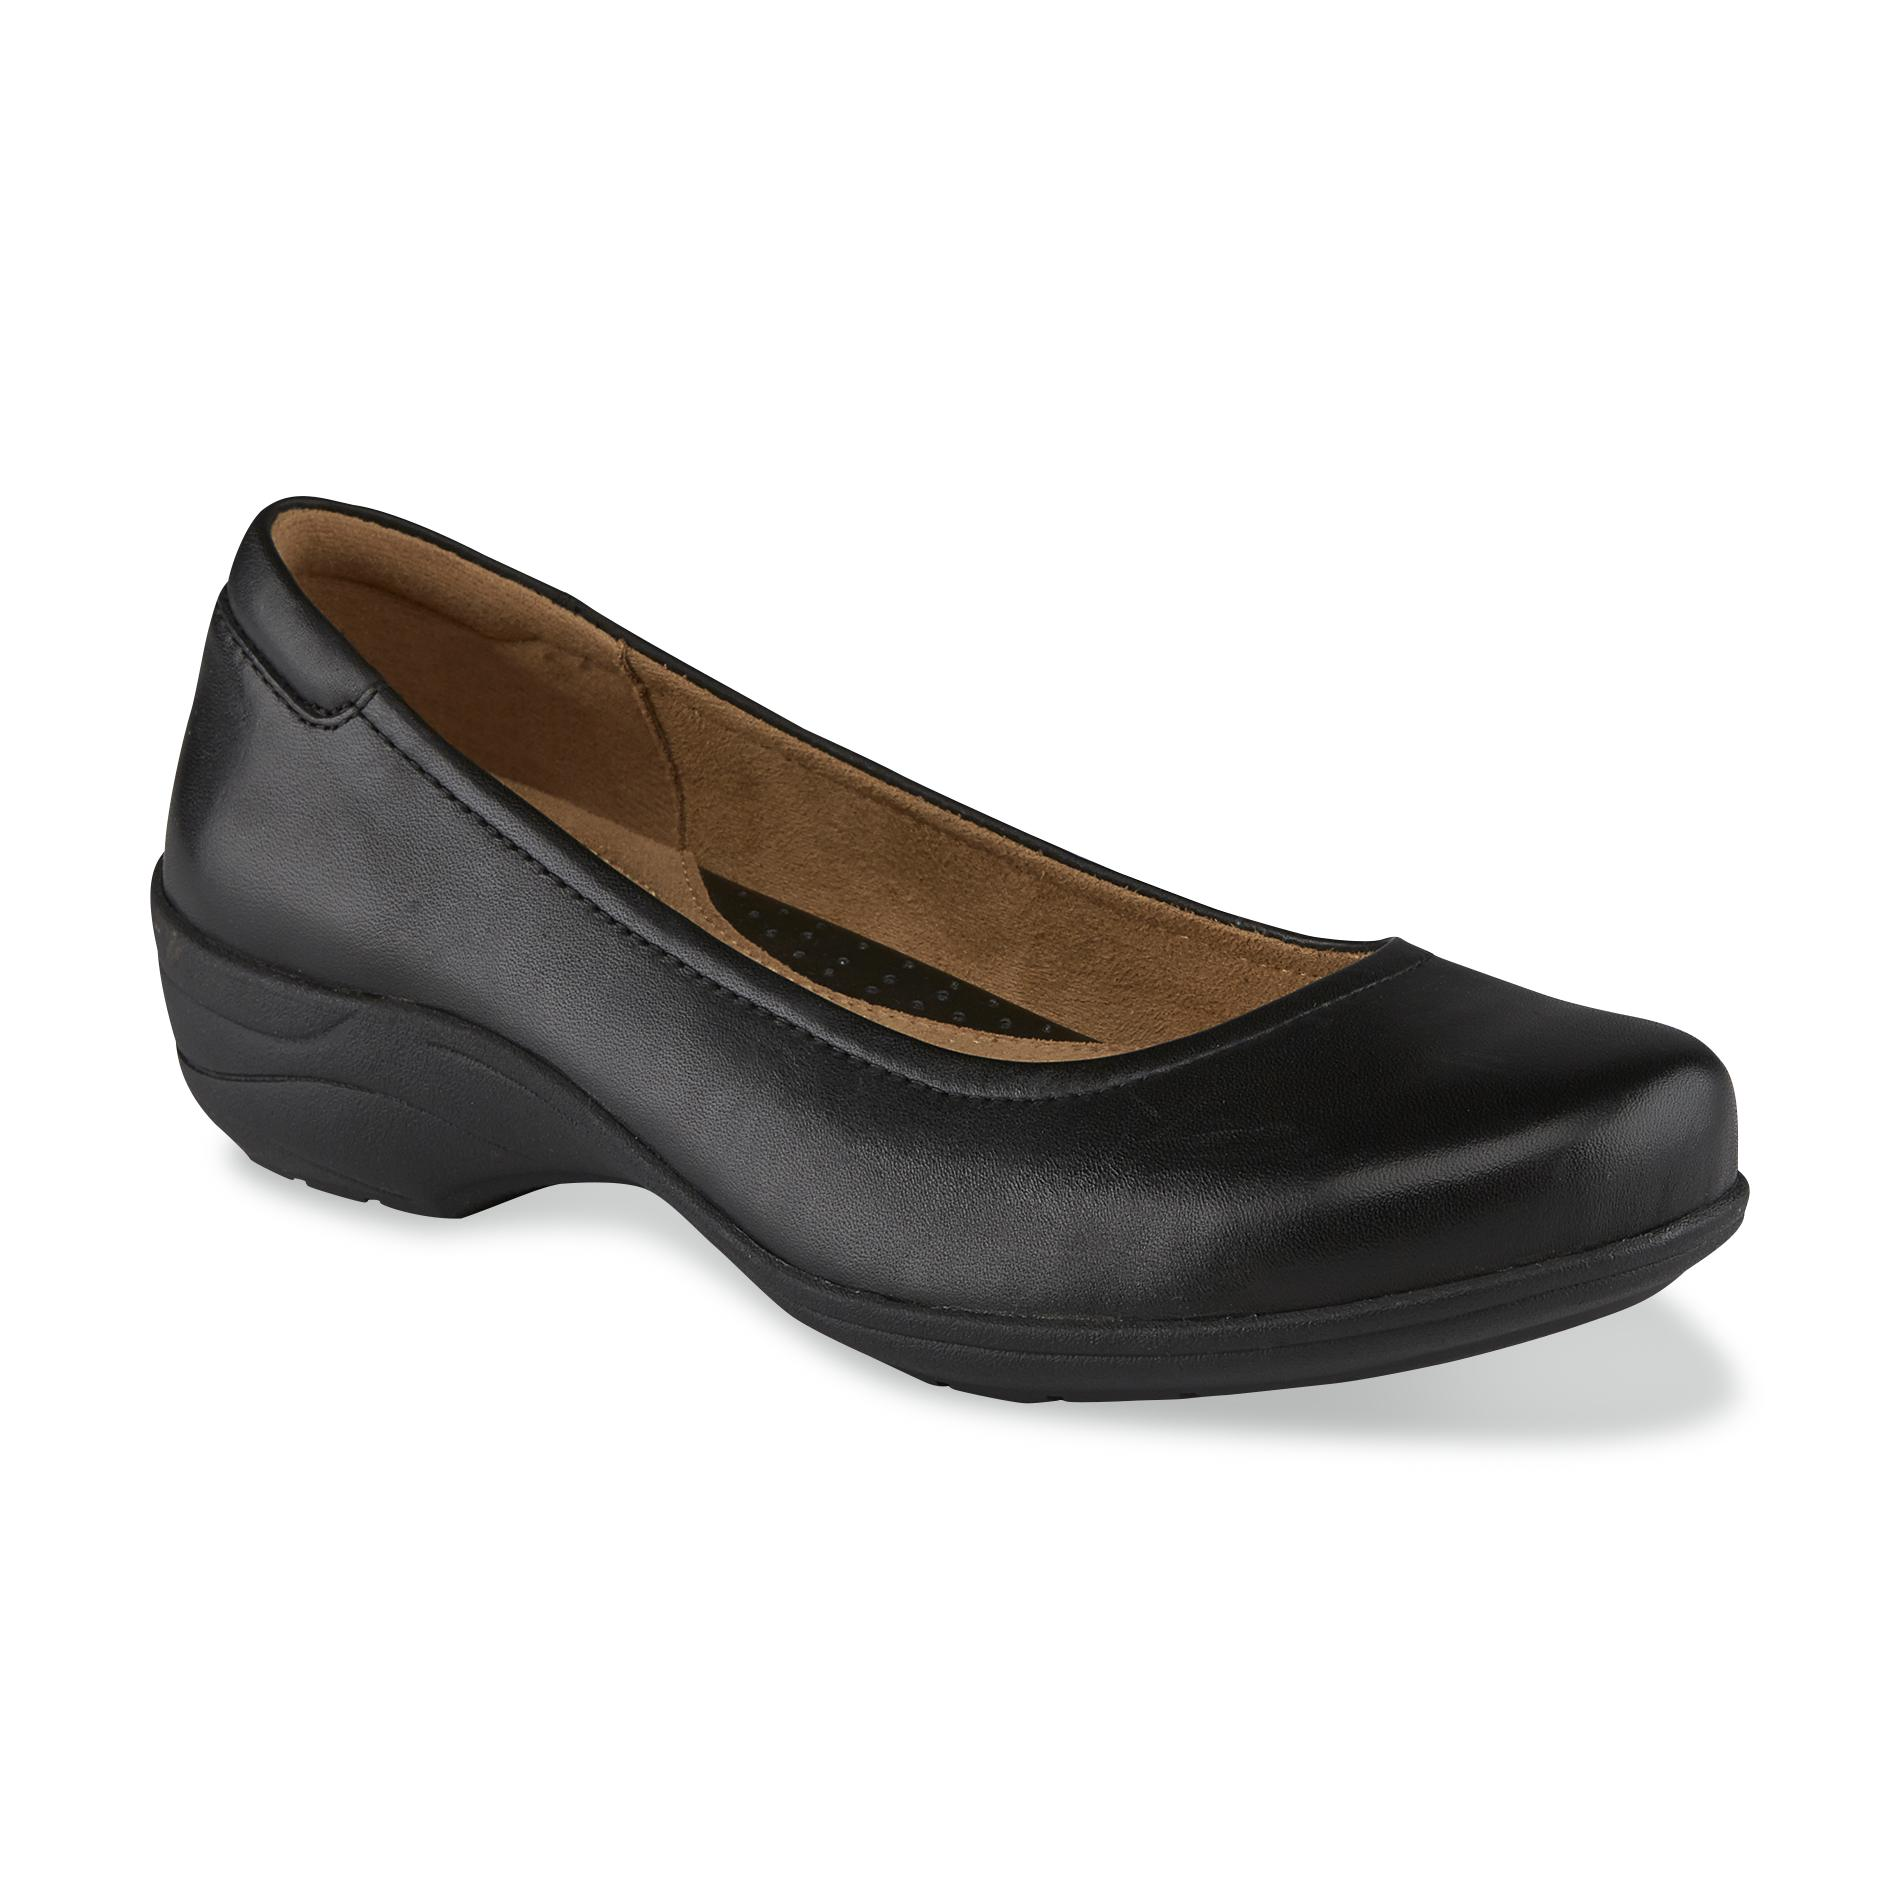 Comfortable Shoes For Flat Wide Feet  Shoes Ideas